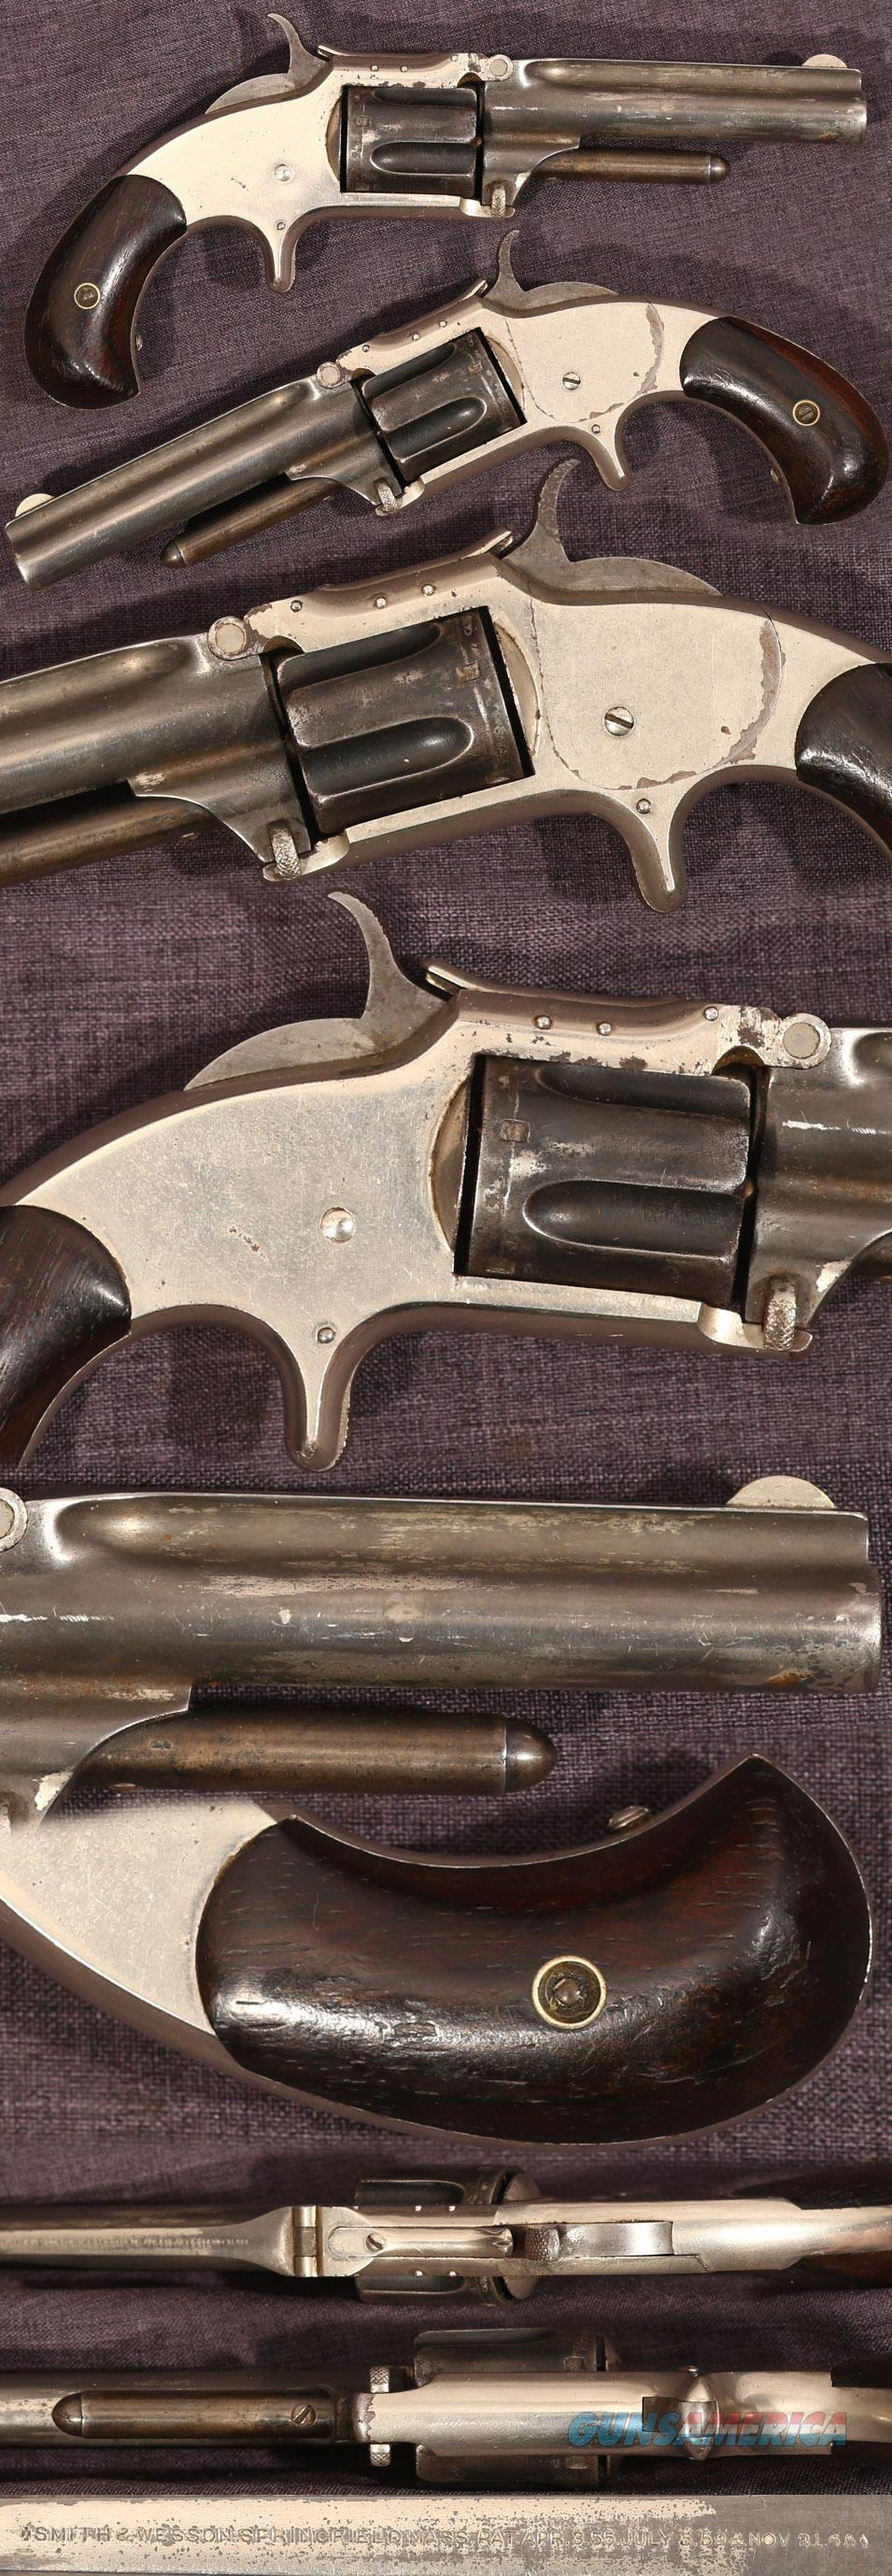 Smith & Wesson Model 1-1/2 second issue revolver  Guns > Pistols > Smith & Wesson Revolvers > Pre-1899